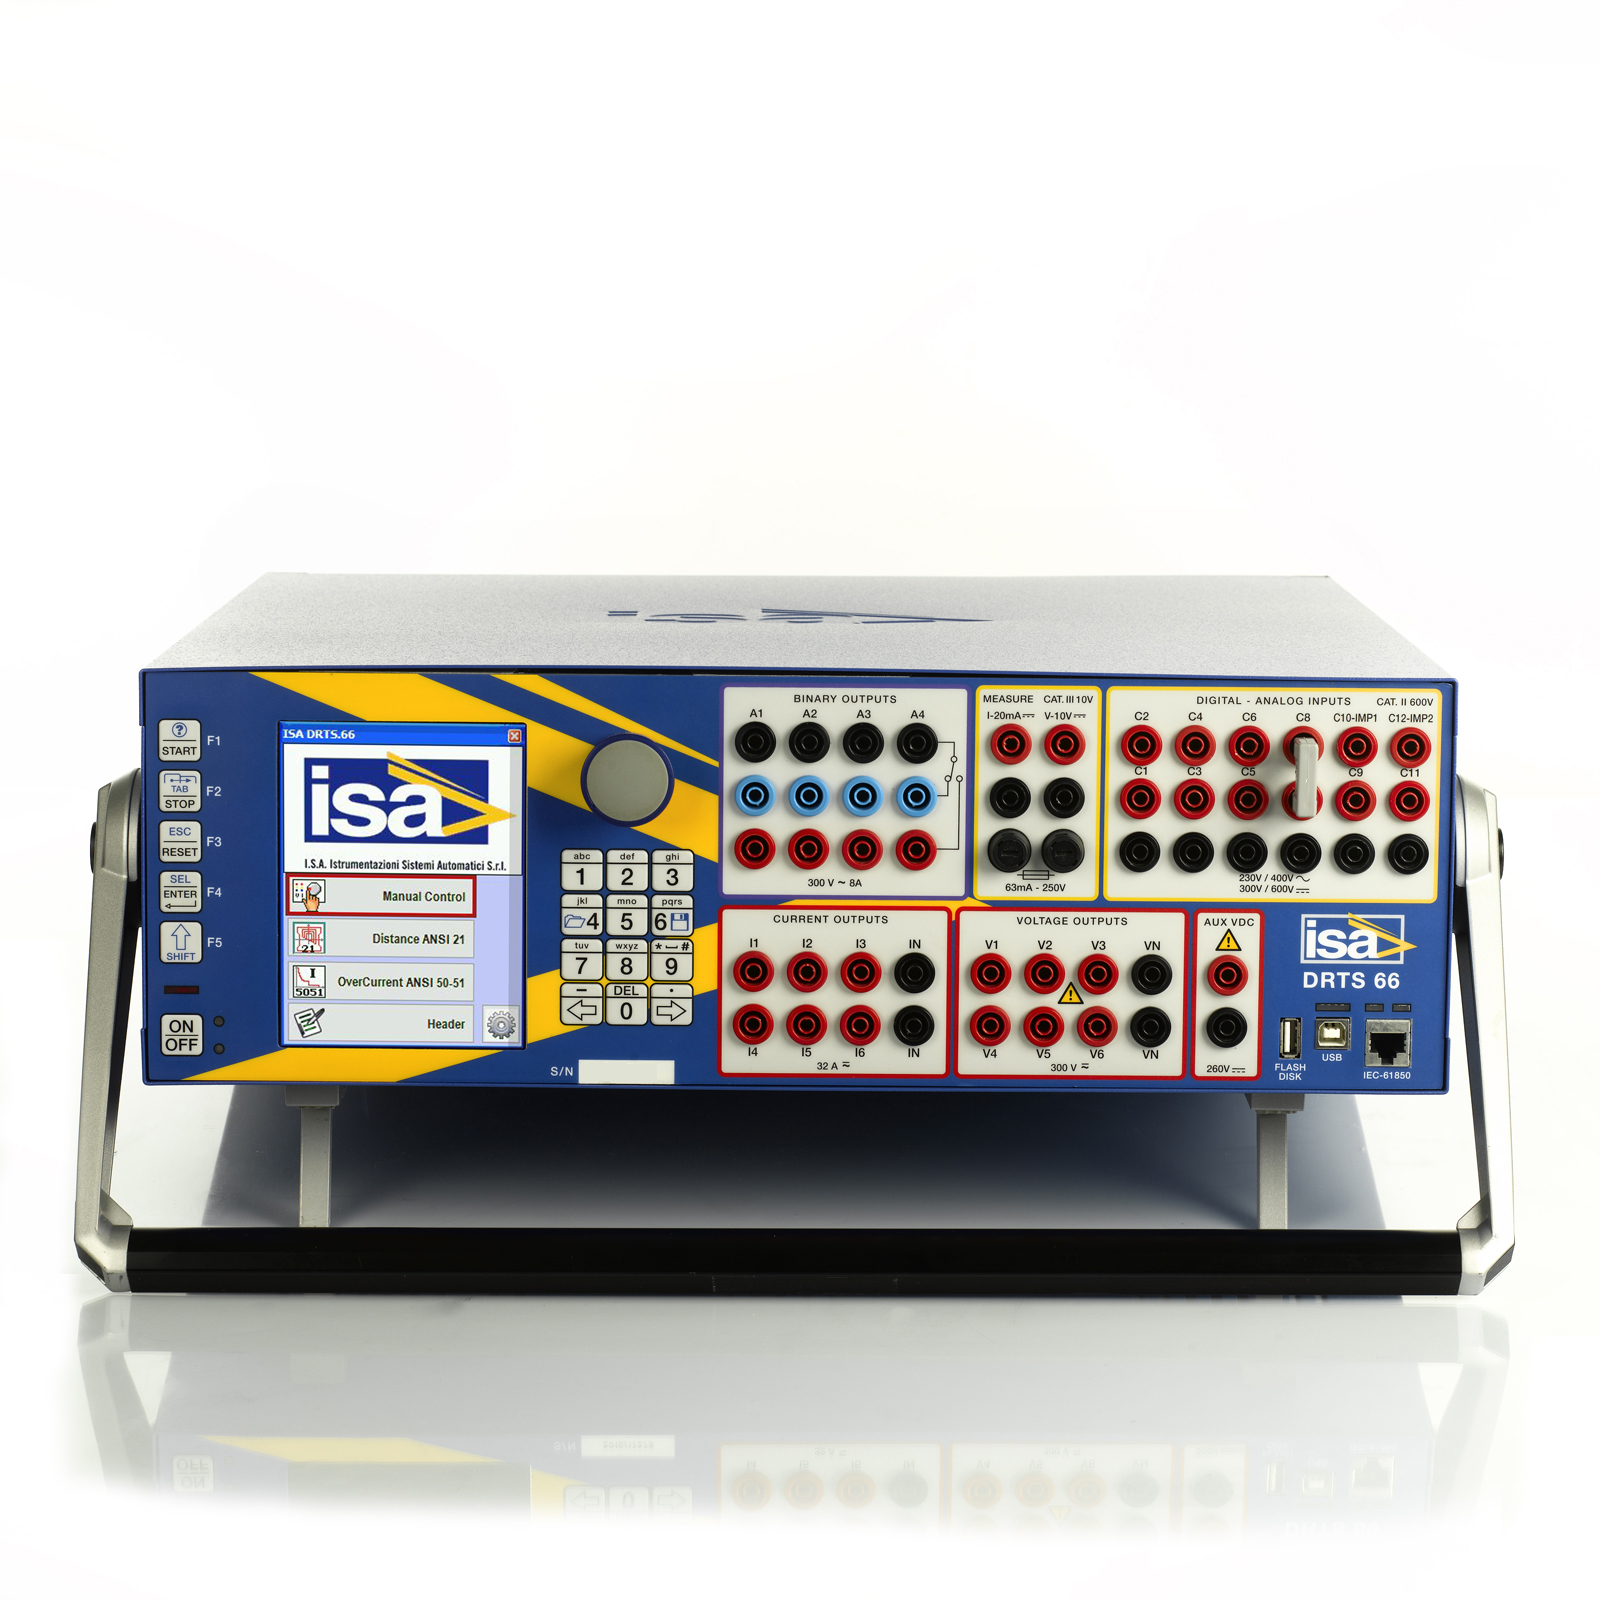 DRTS 66|Automatic relay test set